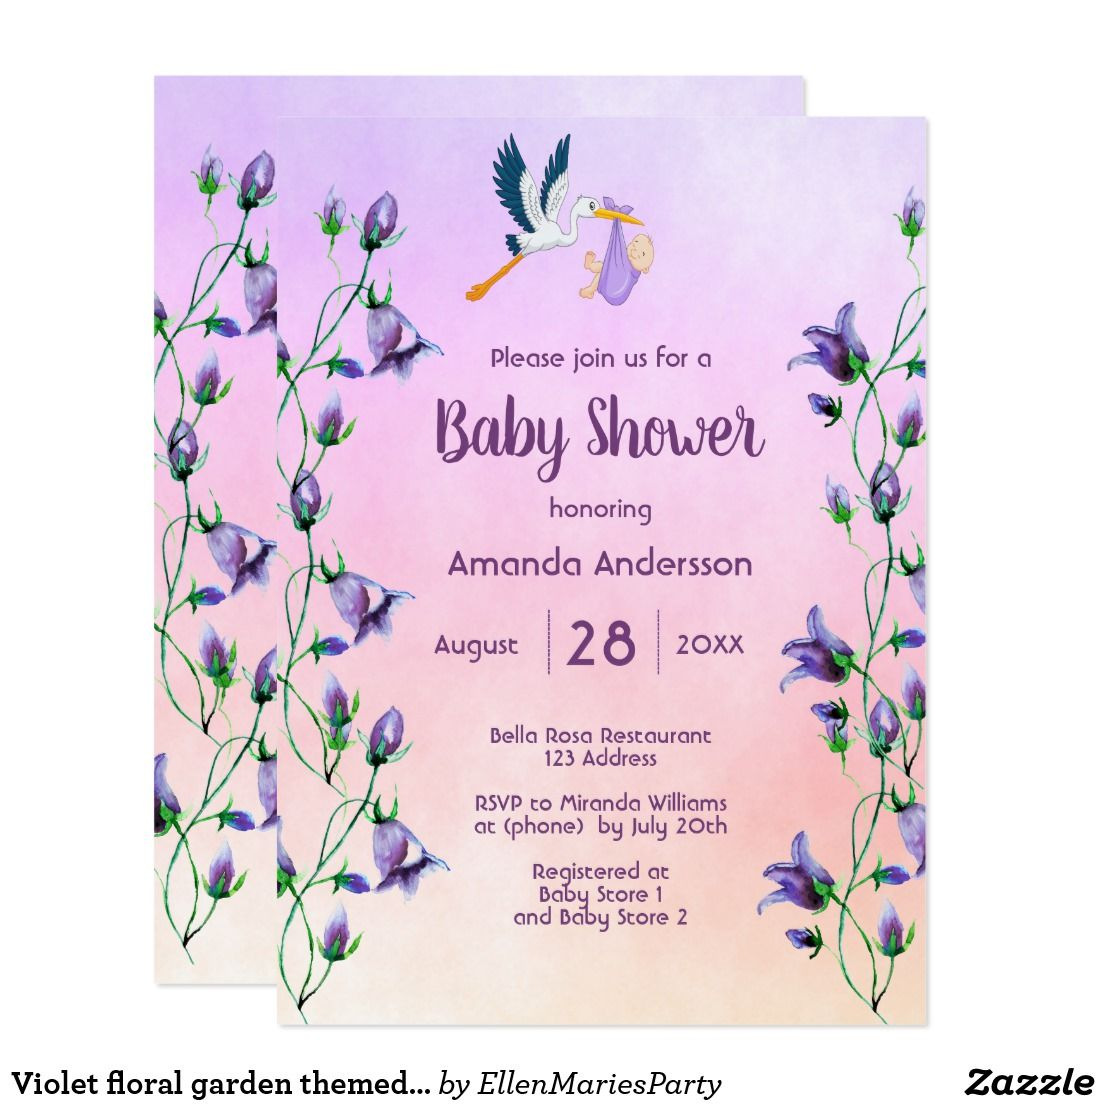 Baby Shower Invitation Letter Beauteous Violet Floral Garden Themed Baby Shower Invitation  Babies And Baby .